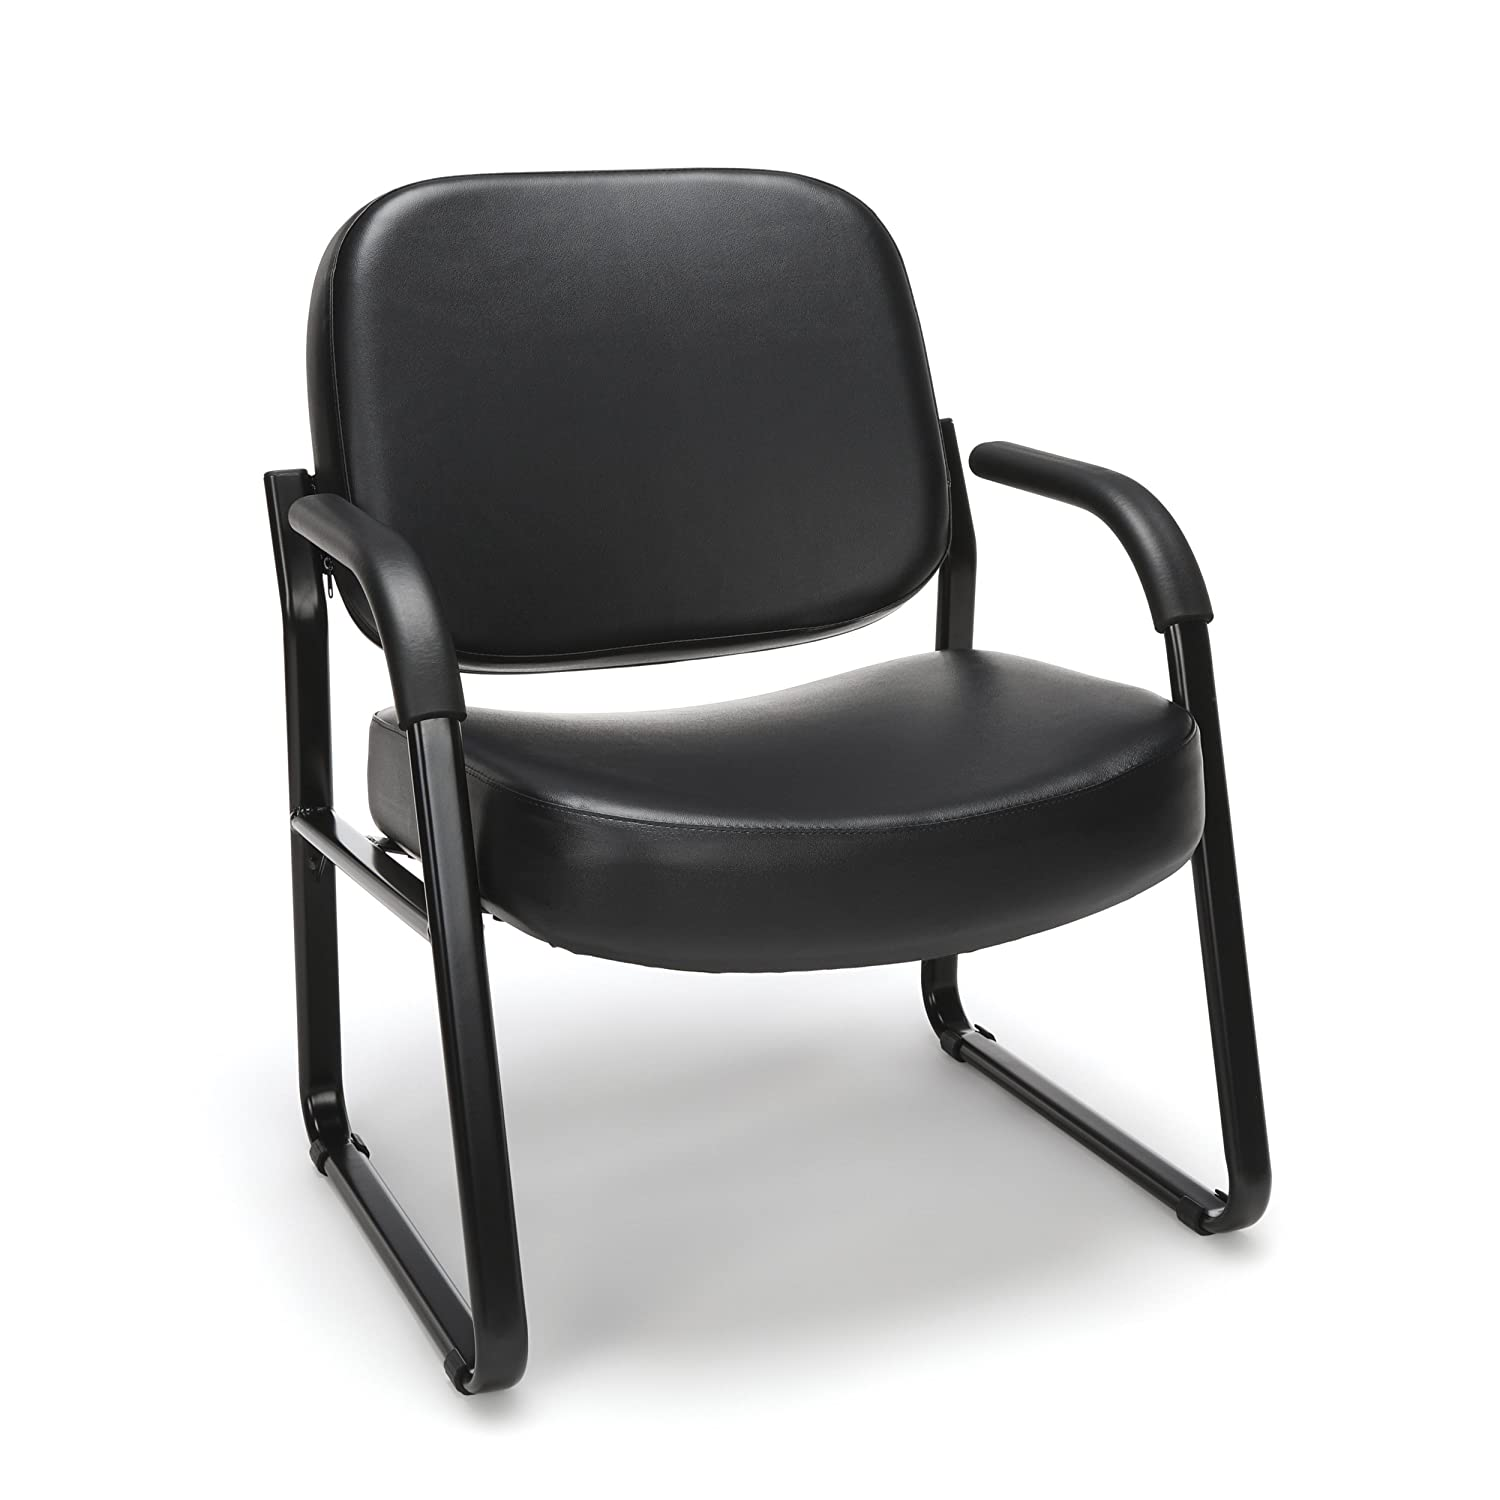 OFM Big and Tall Reception Chair with Arms – Anti-Microbial Anti-Bacterial Vinyl Mid-Back Guest Chair, Black